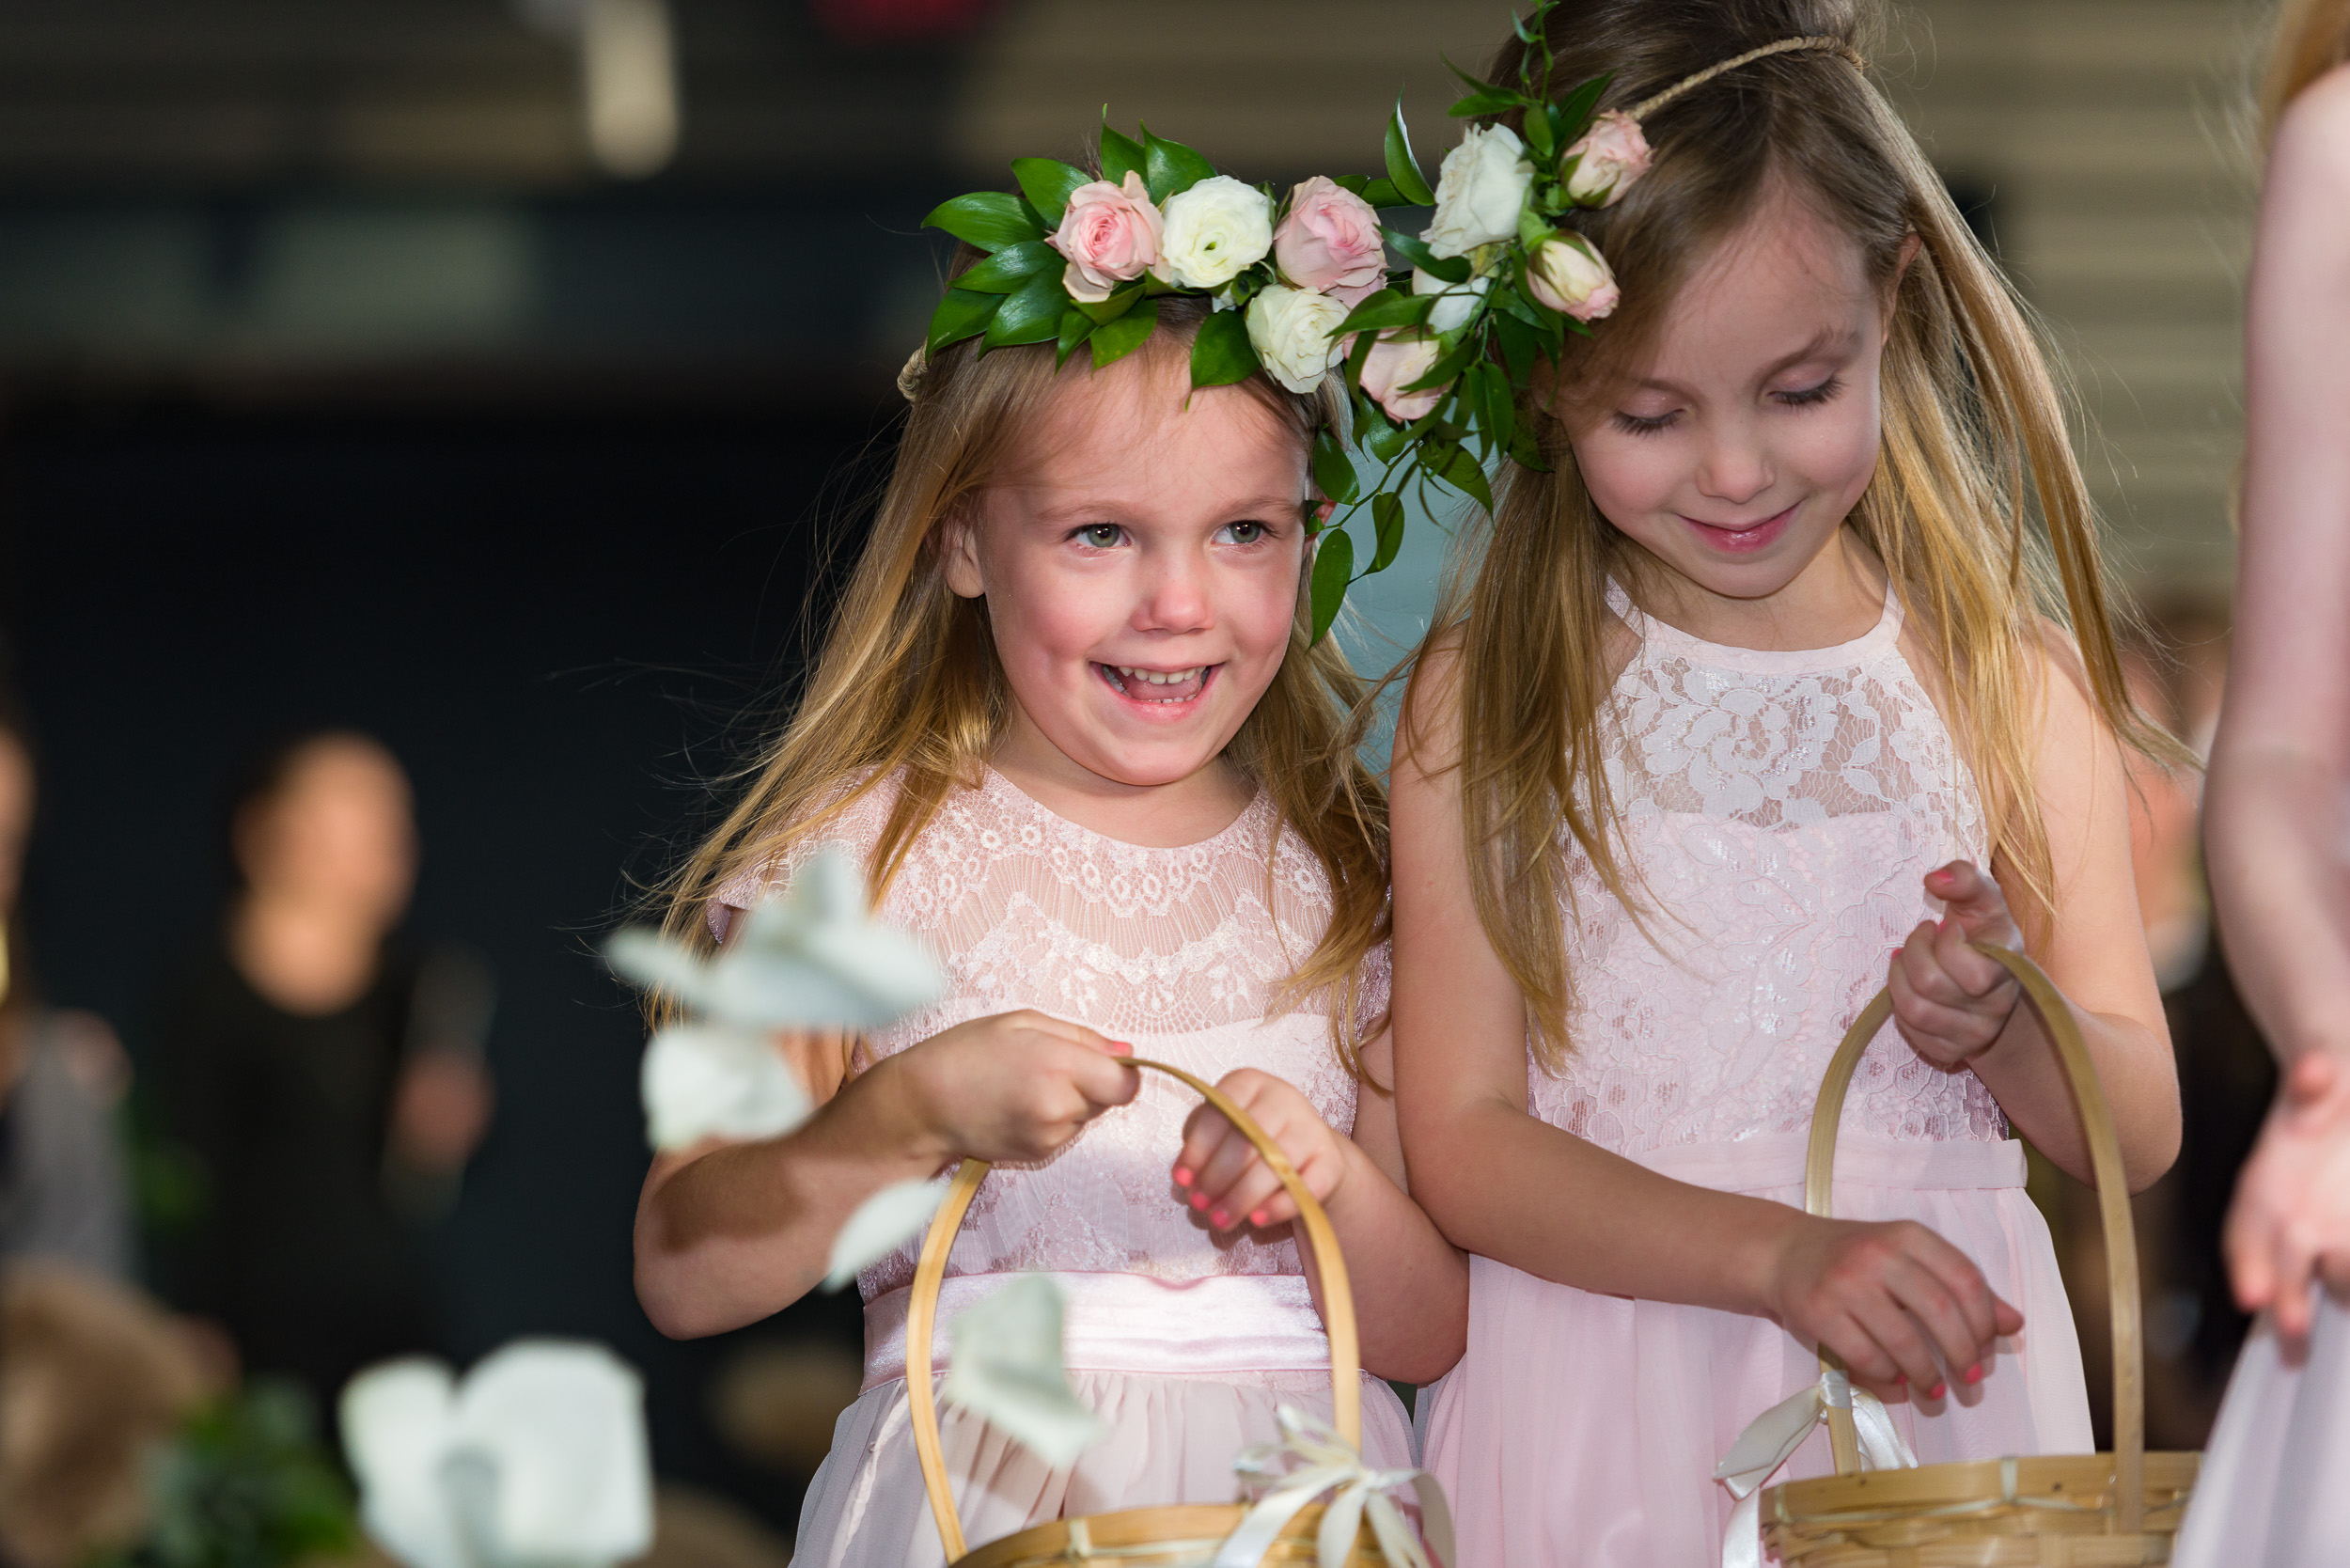 Austin-wedding-photographers-brazos-hall-downtown-flower-girls-cute-headband-floral-crowns